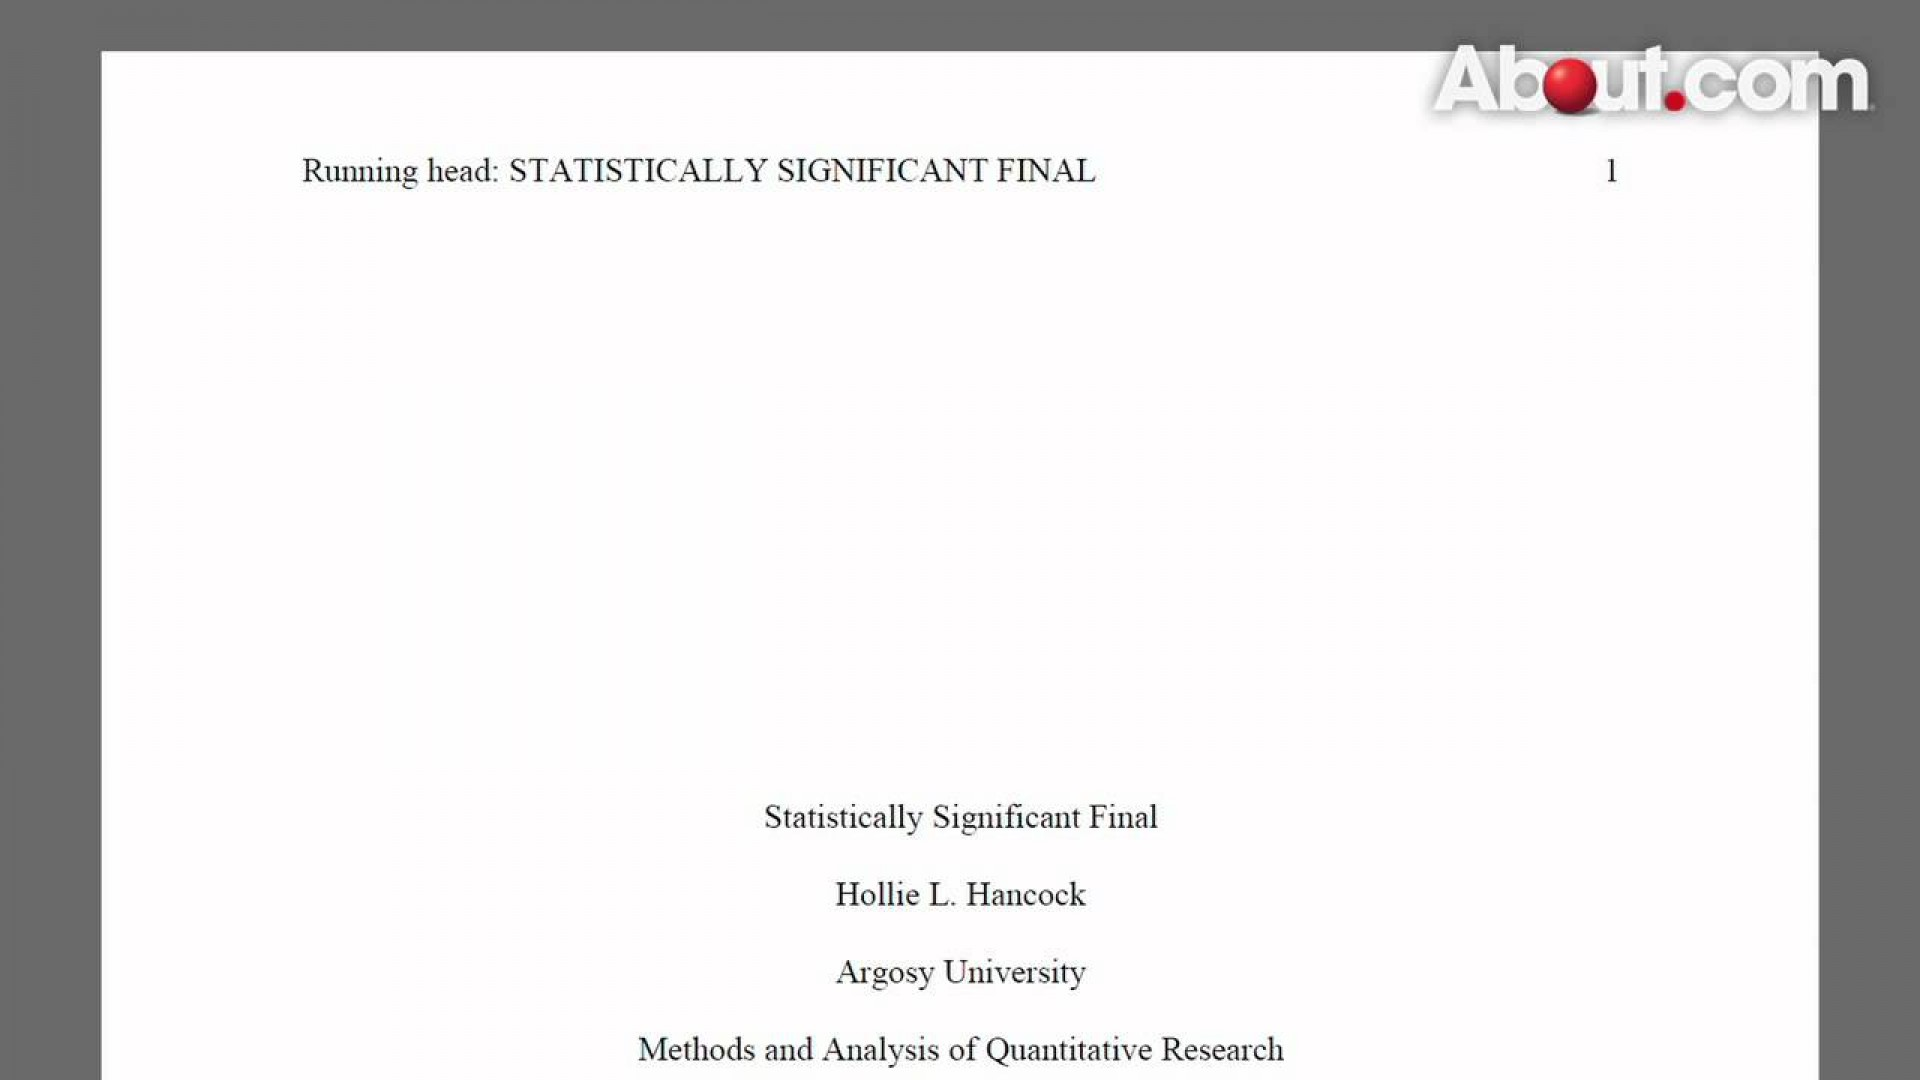 023 Apa Style Research Paper Example Title Page 82515 Stunning 2013 1920